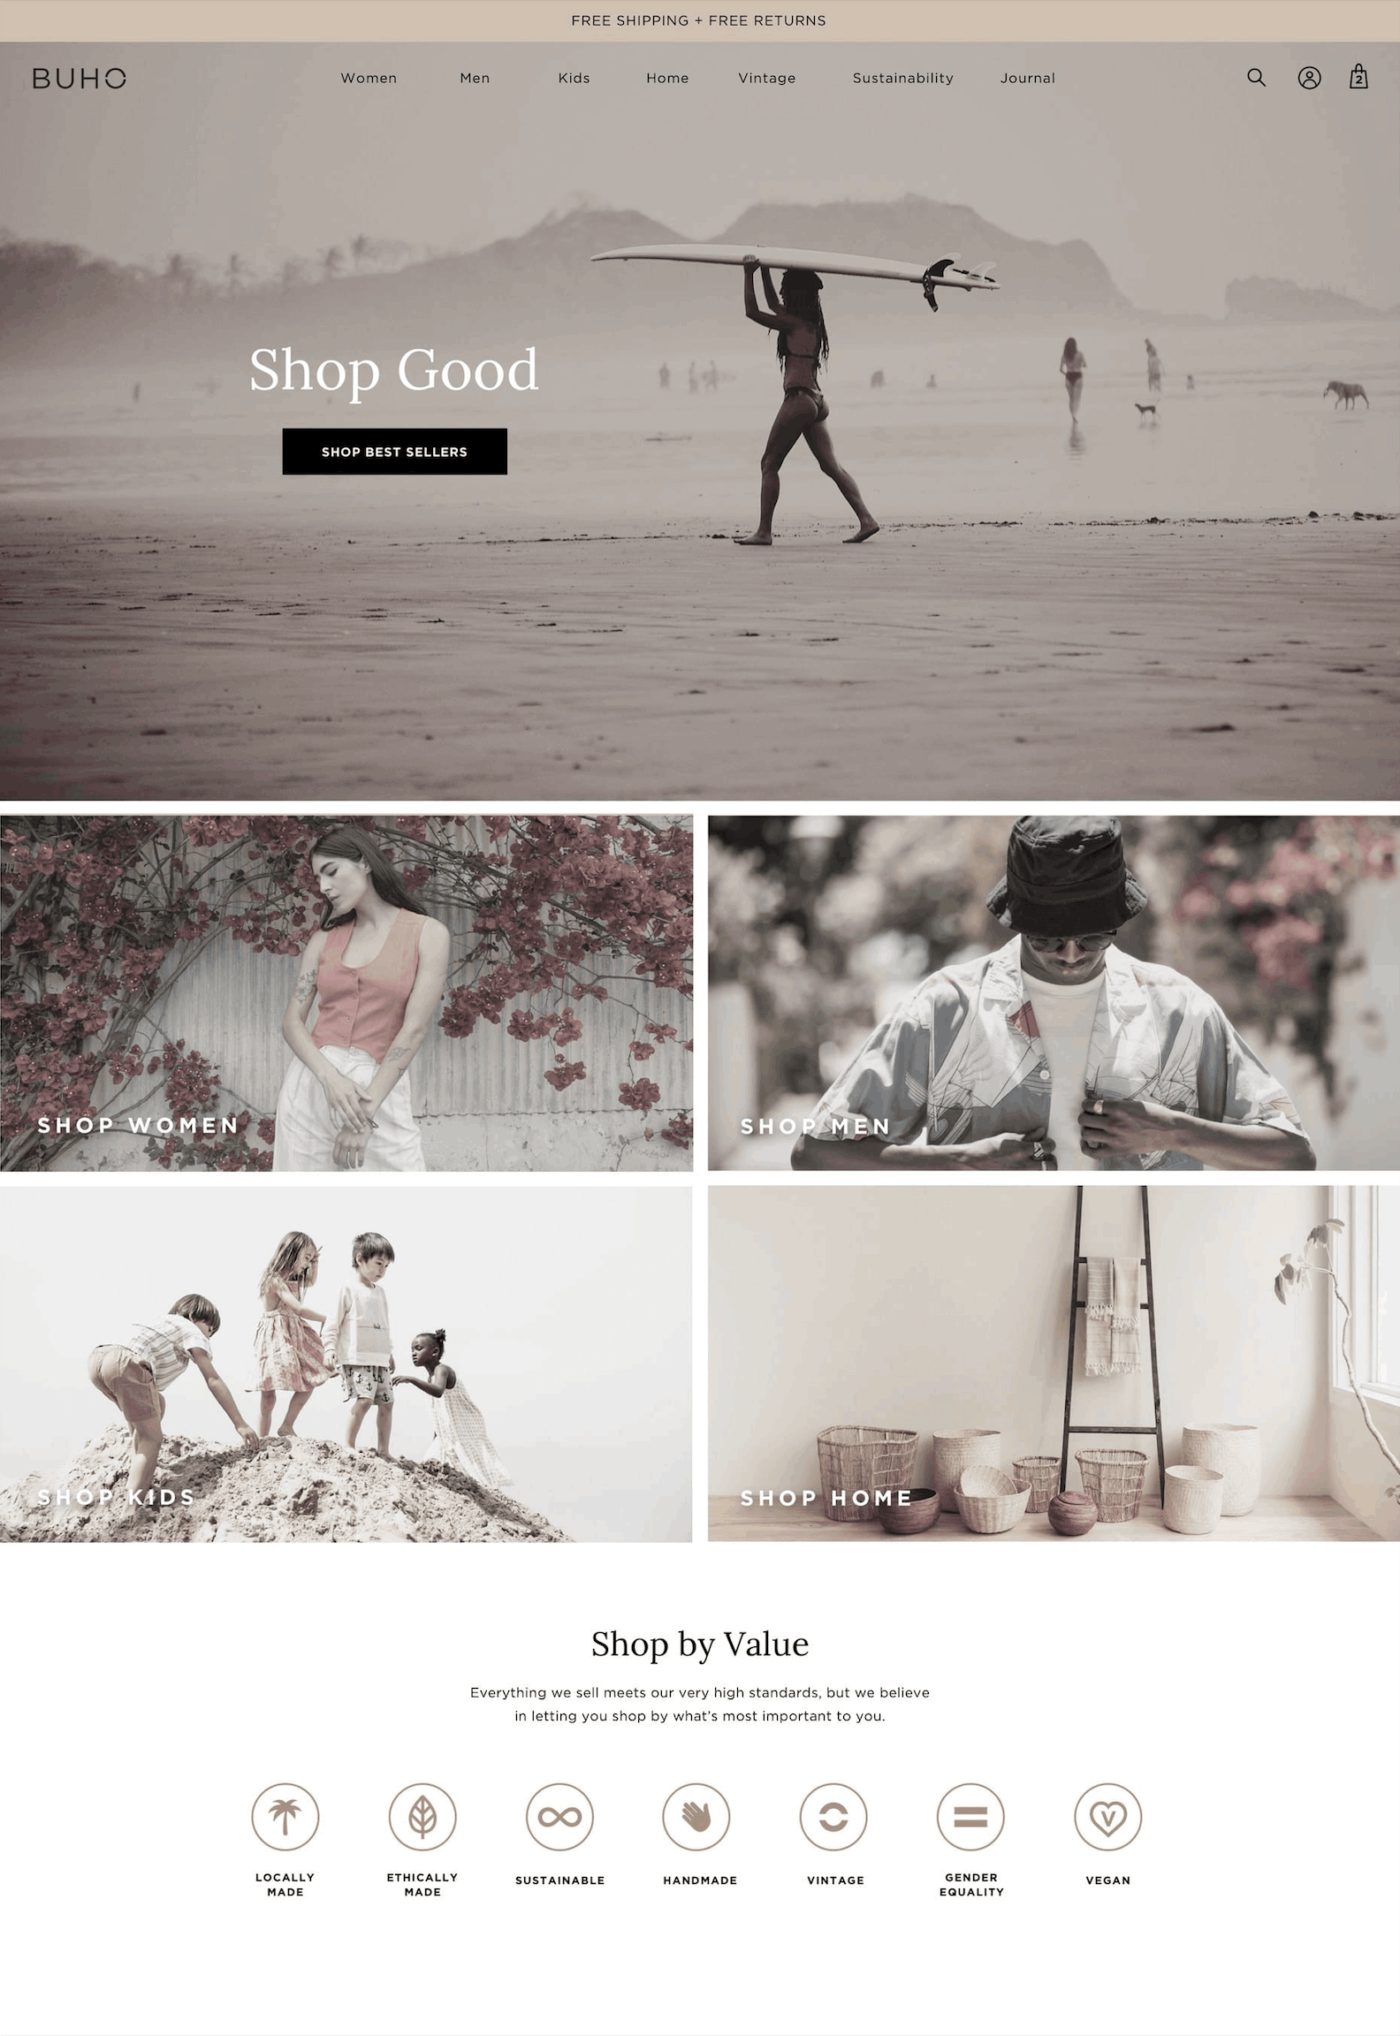 Buho shop by Value